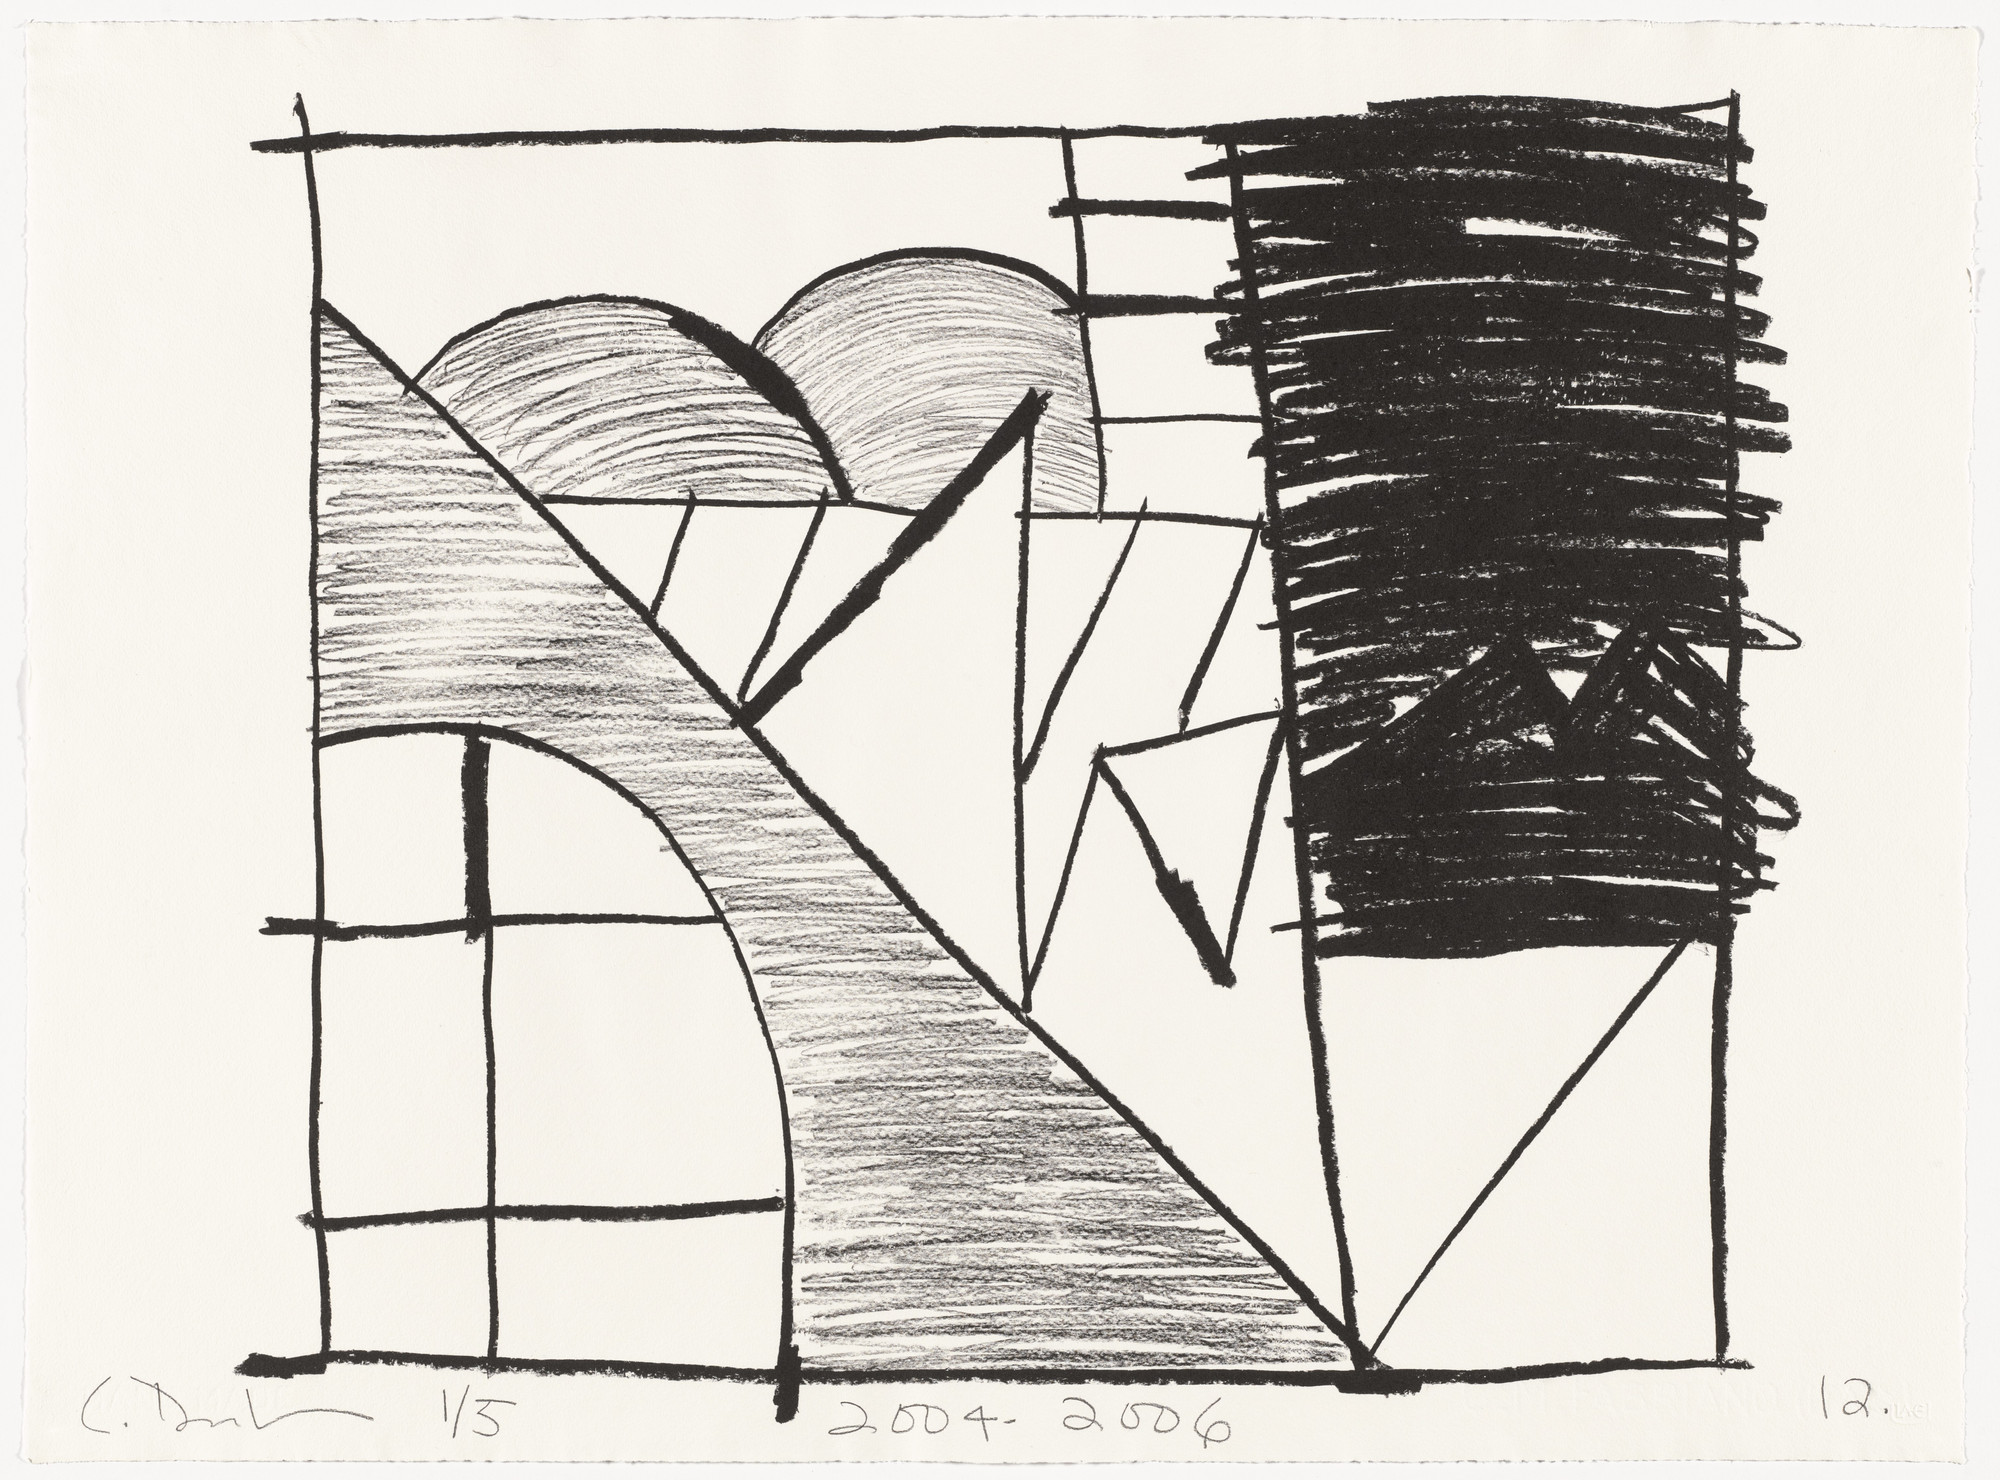 Carroll Dunham. Untitled (12) from Untitled. 2004-06